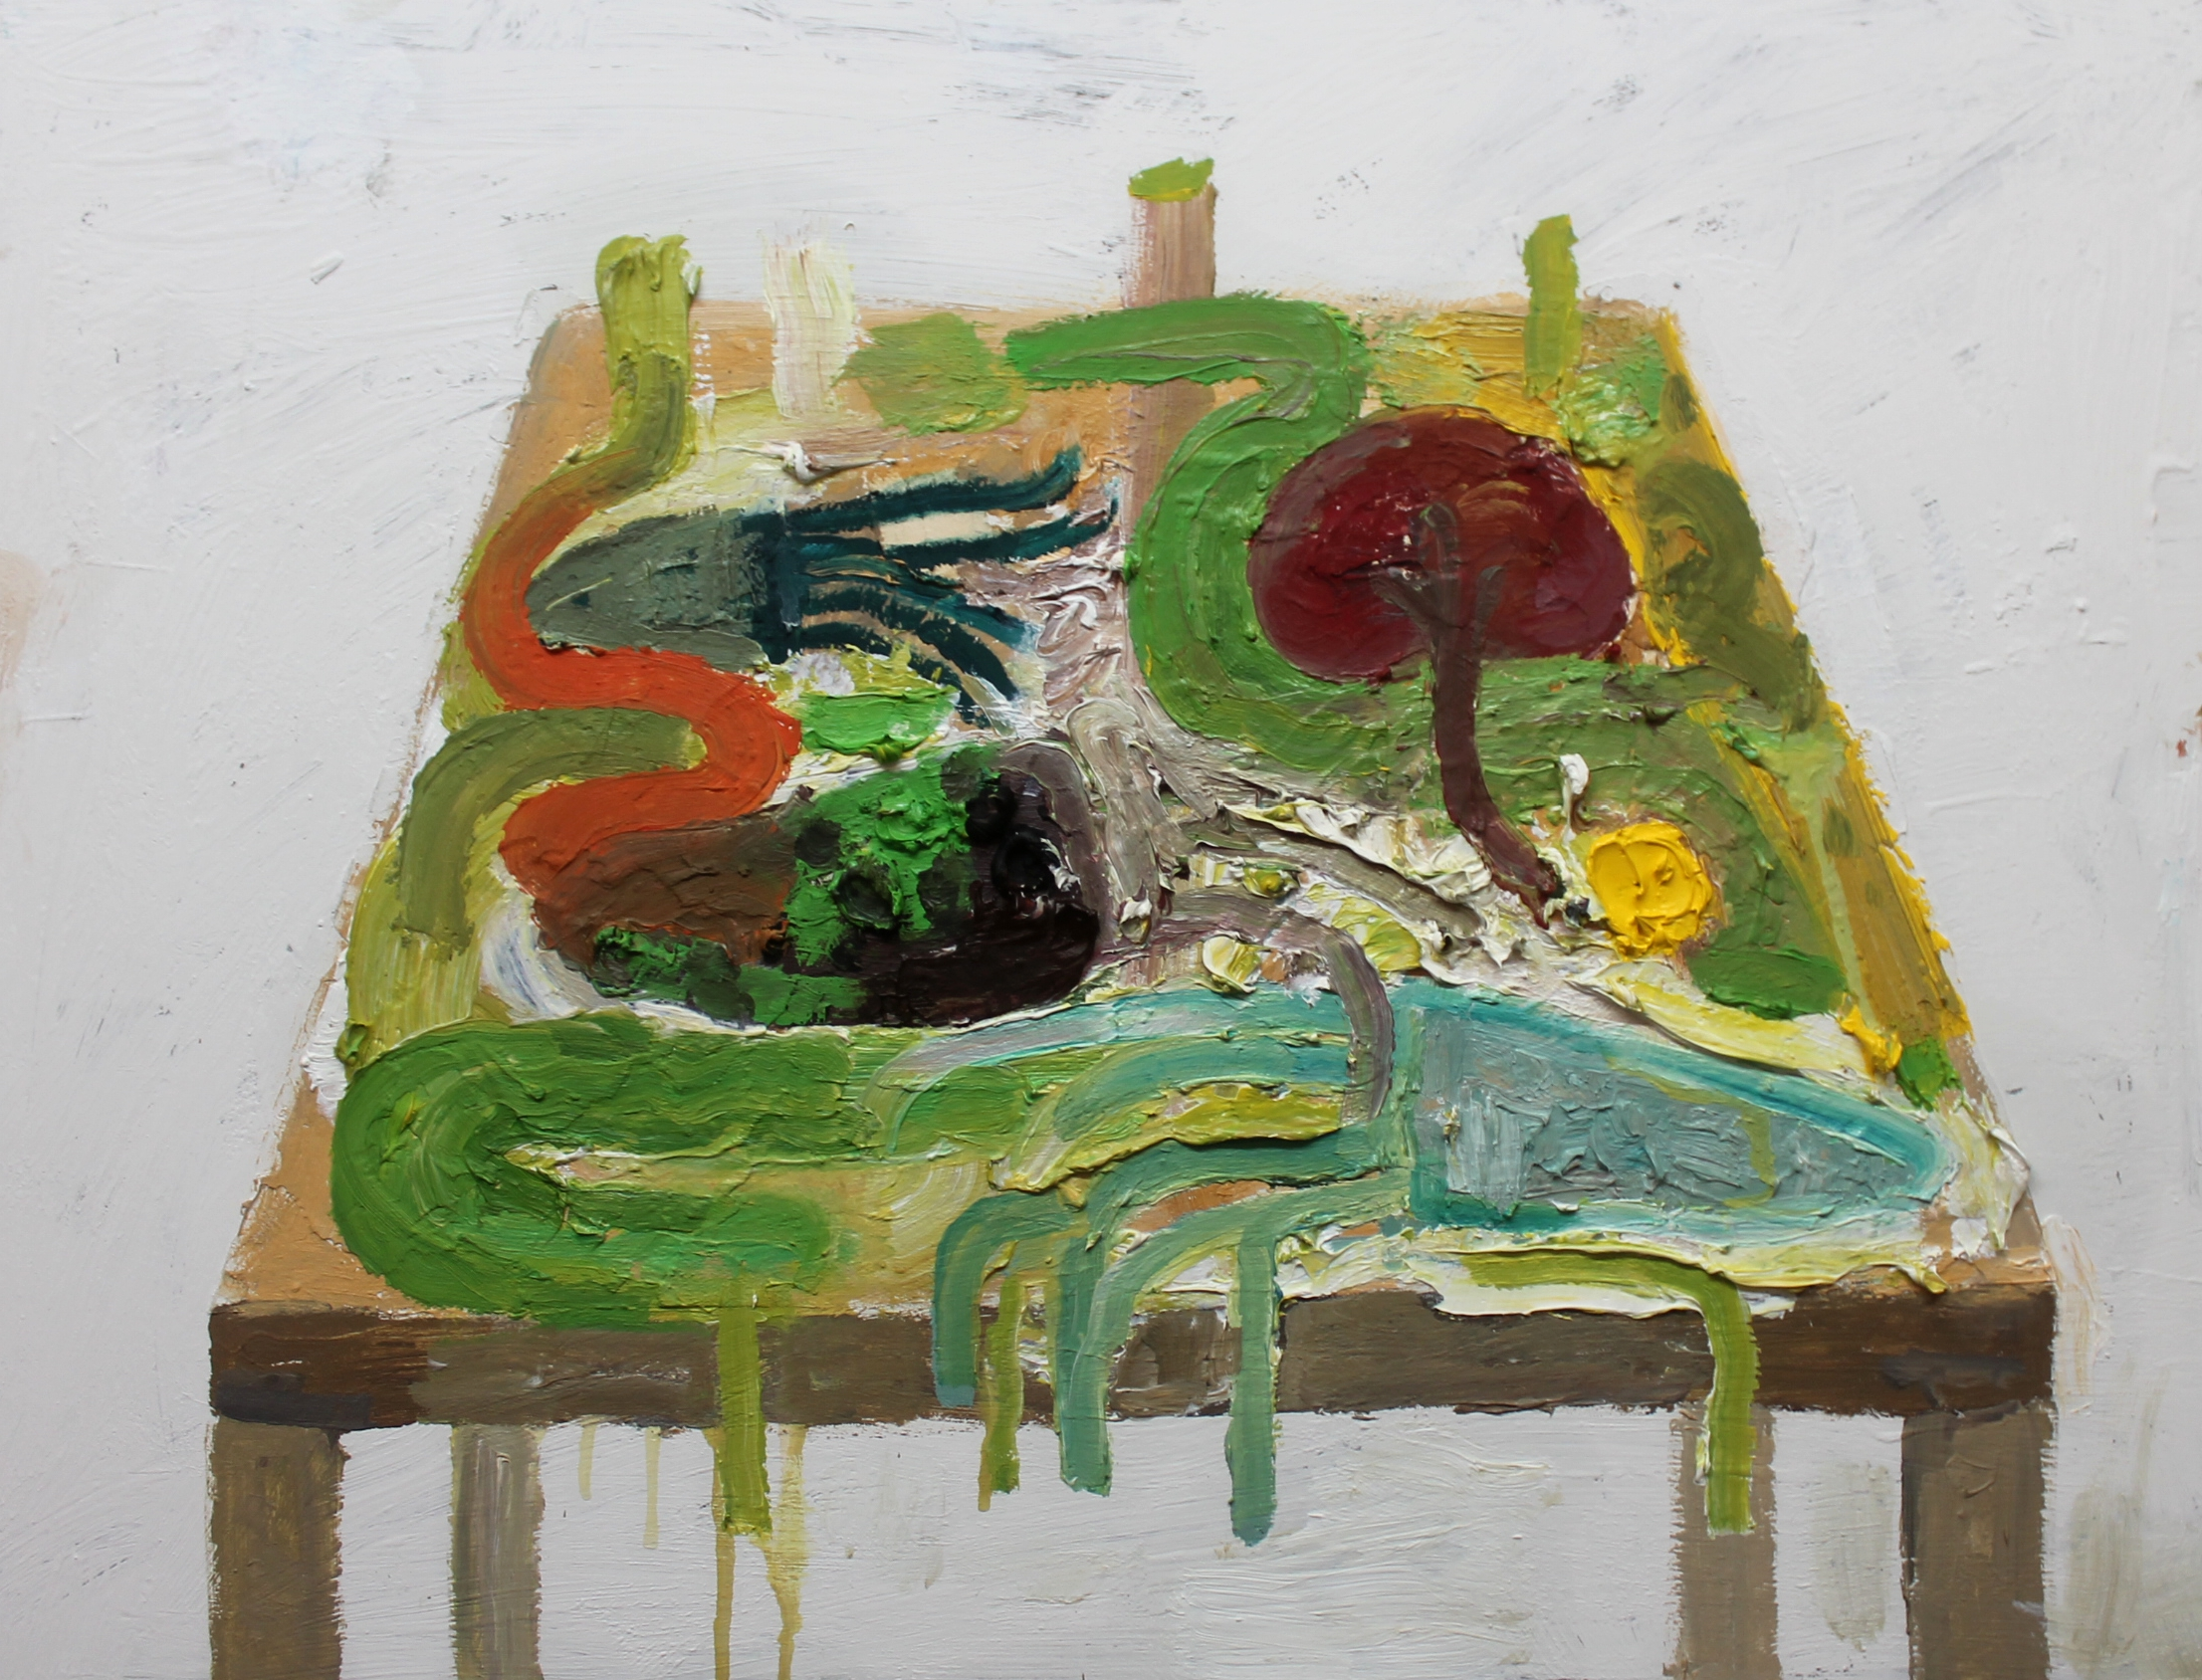 Dissection Table 2   (Green Gland) , 2013, oil on panel, 18 x 24 inches